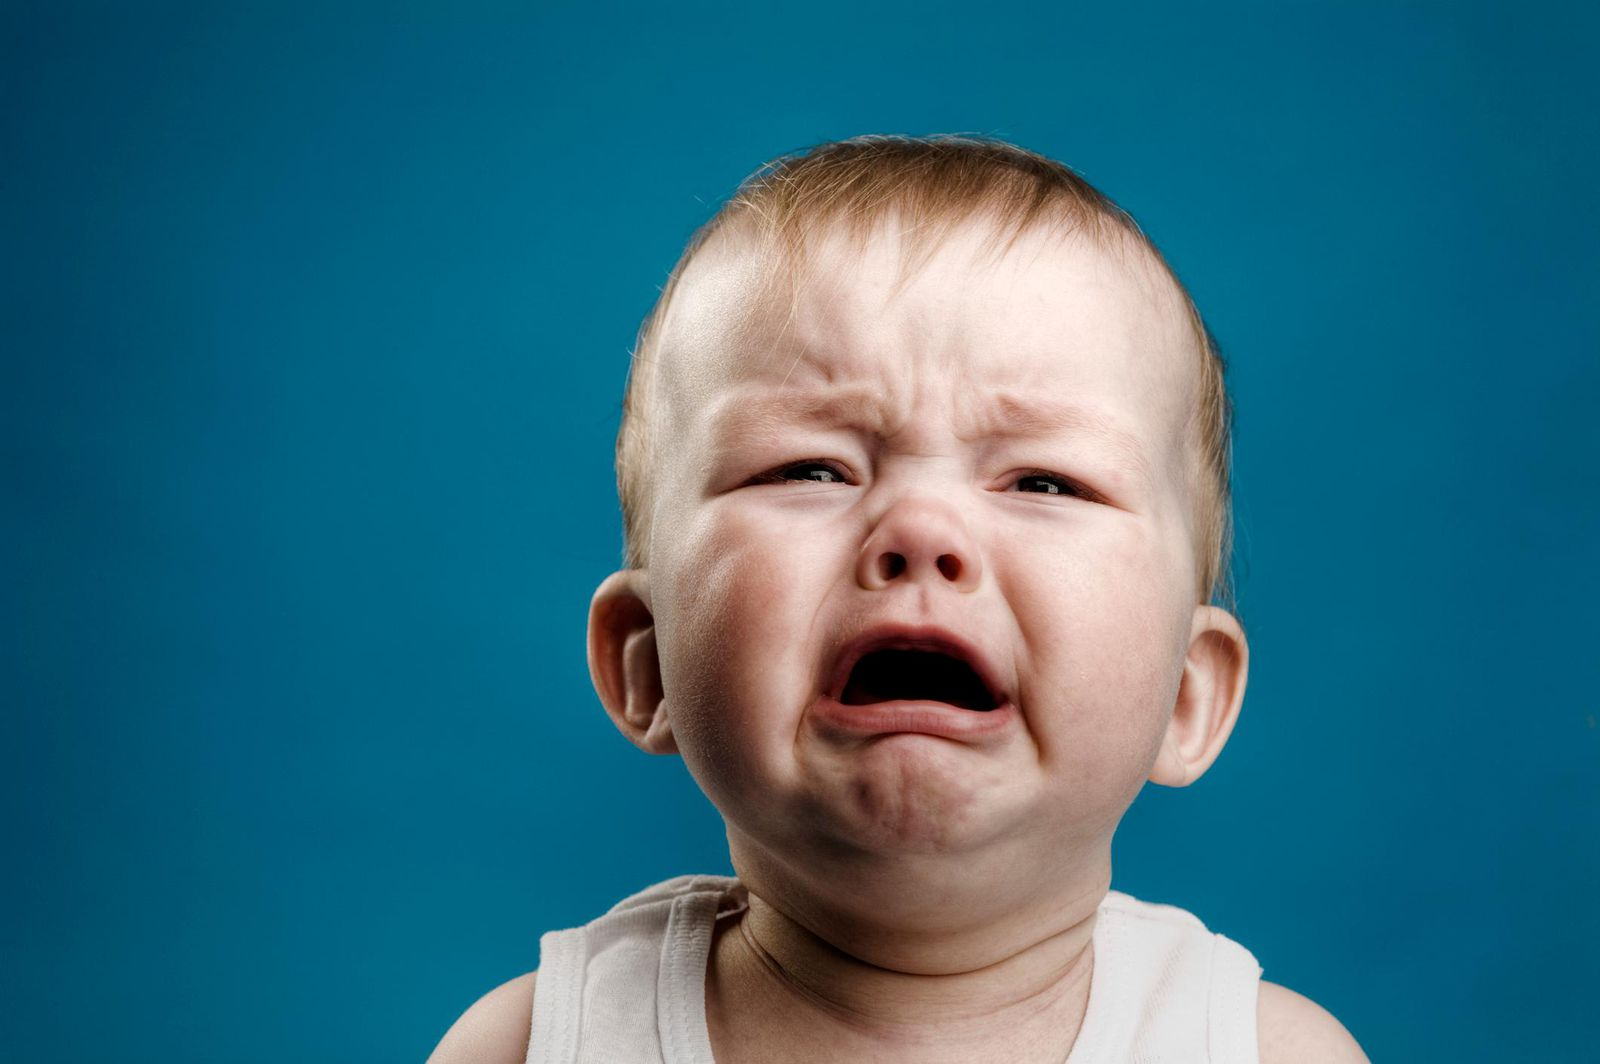 Babies' Cries May Predict What They Will Sound Like as Adults ...